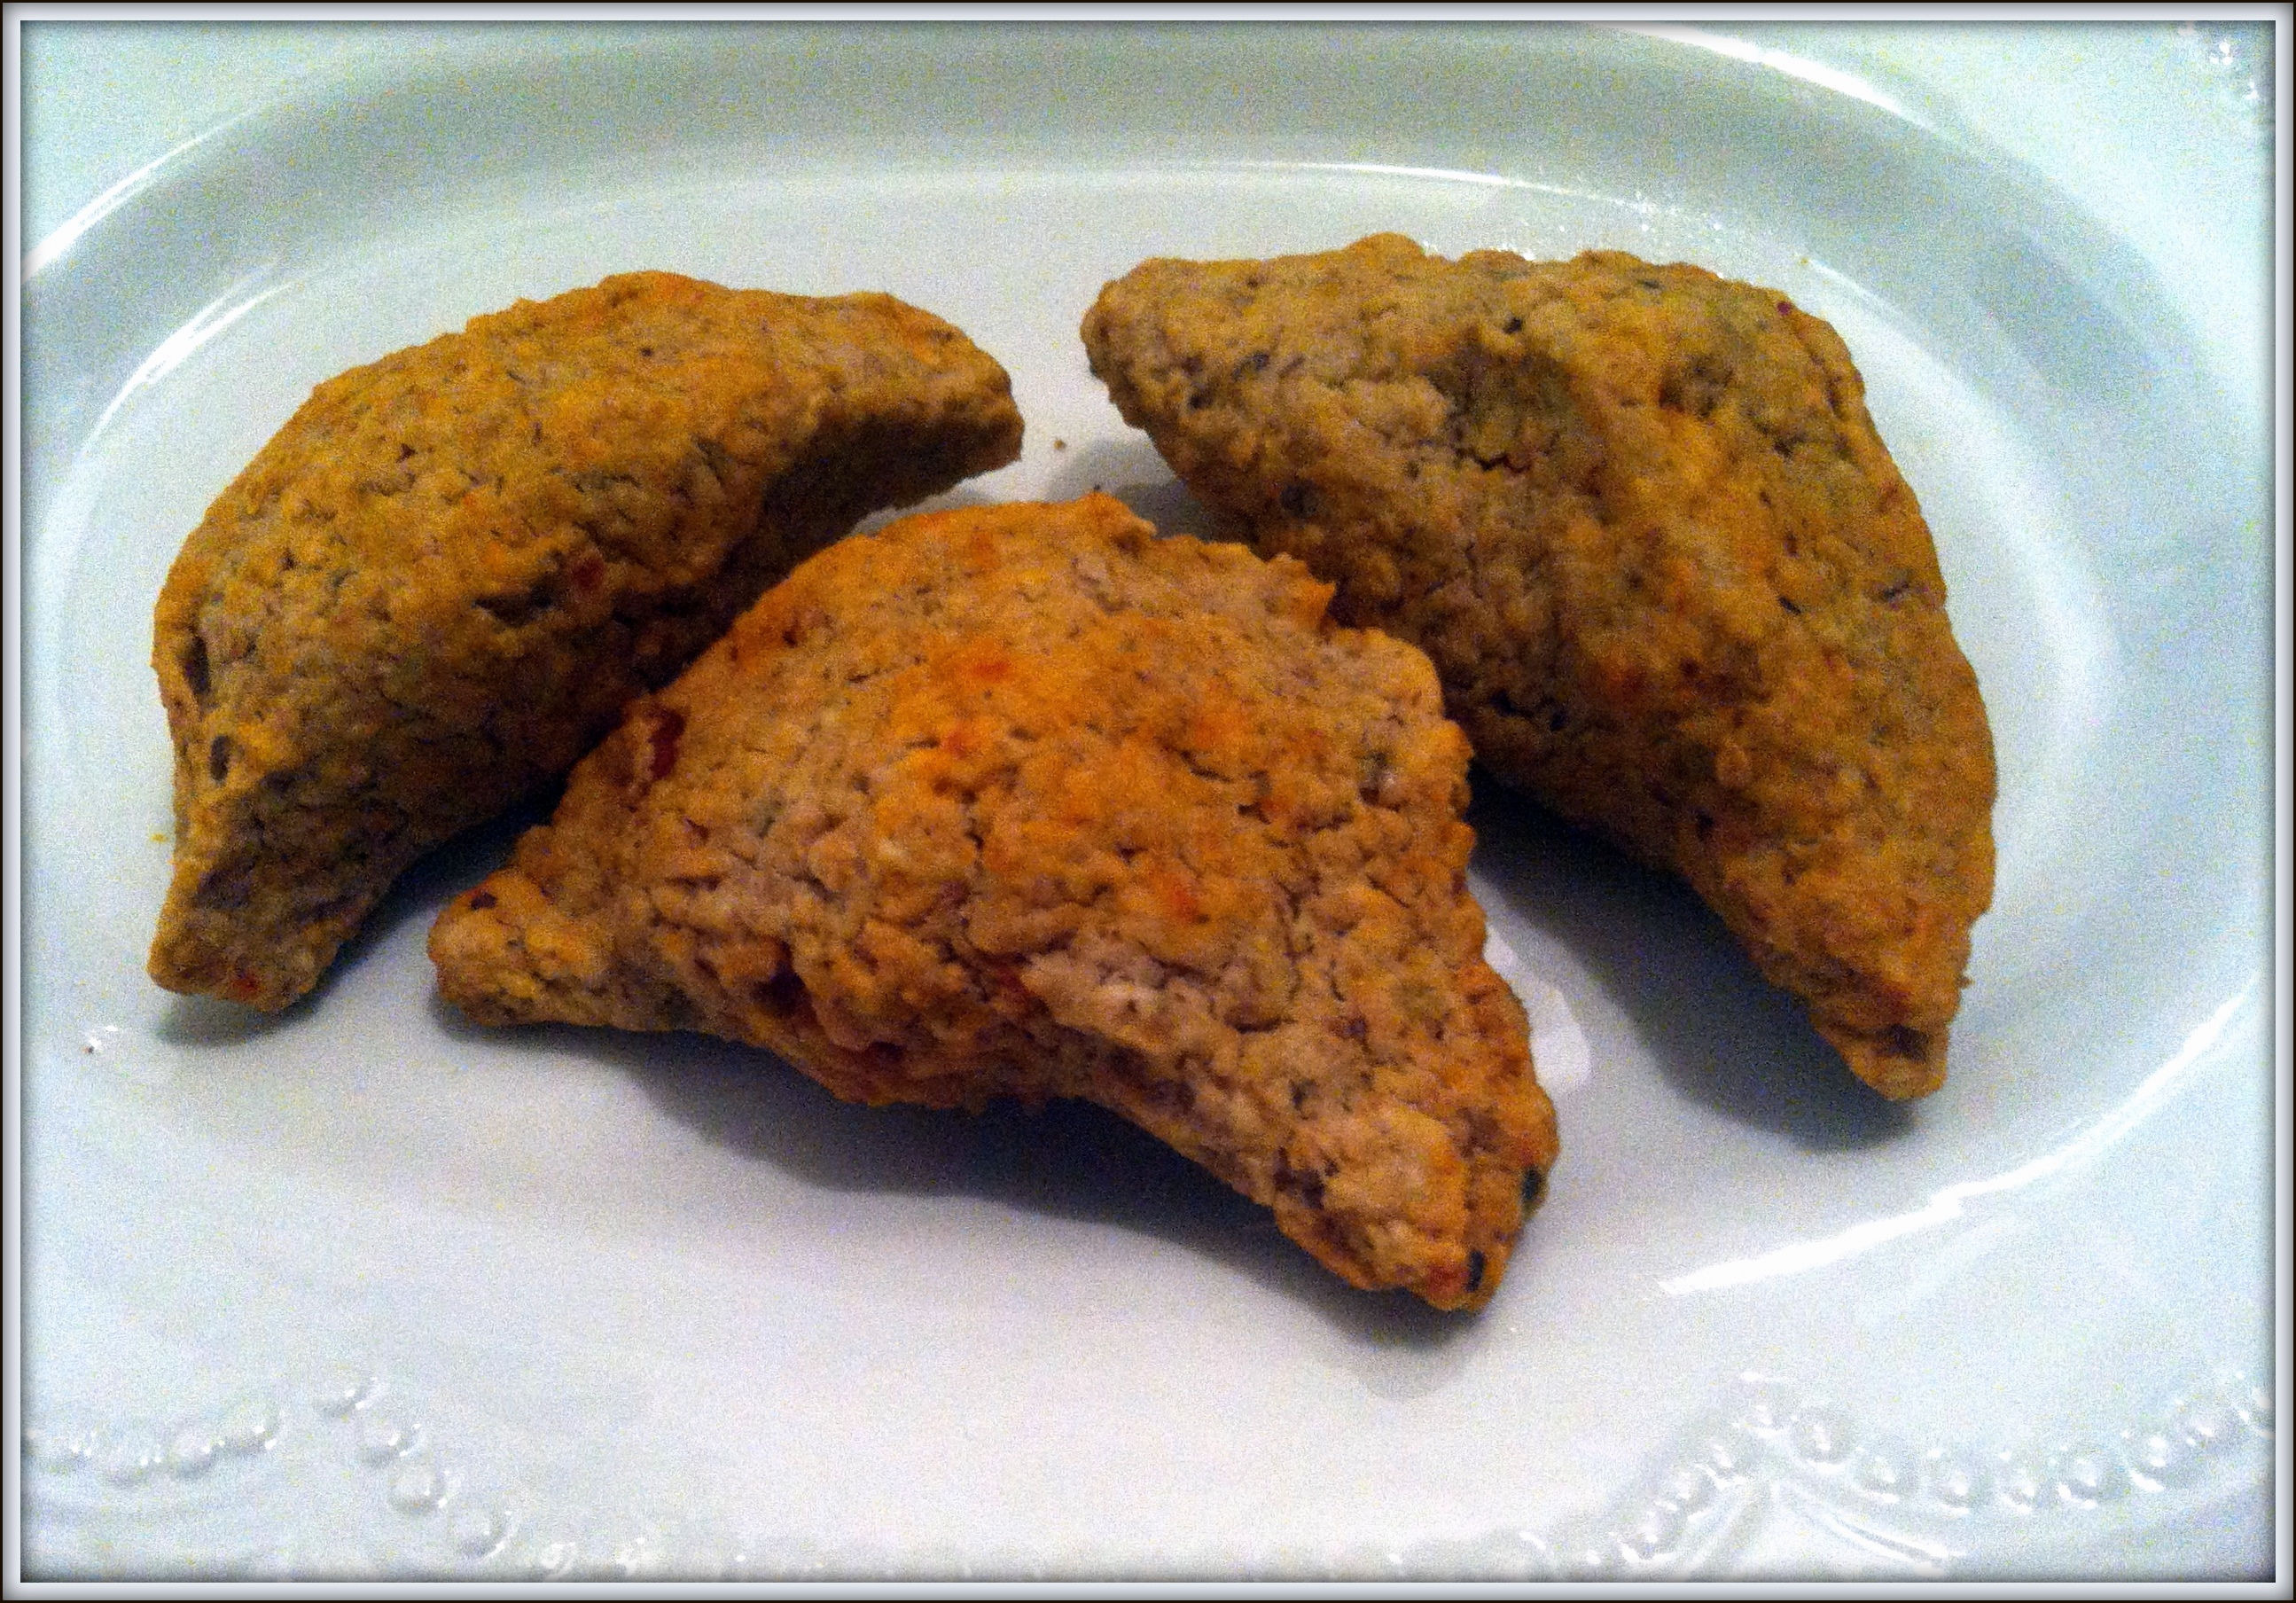 I've missed my empanadas for too long – the vegan version. YAY!